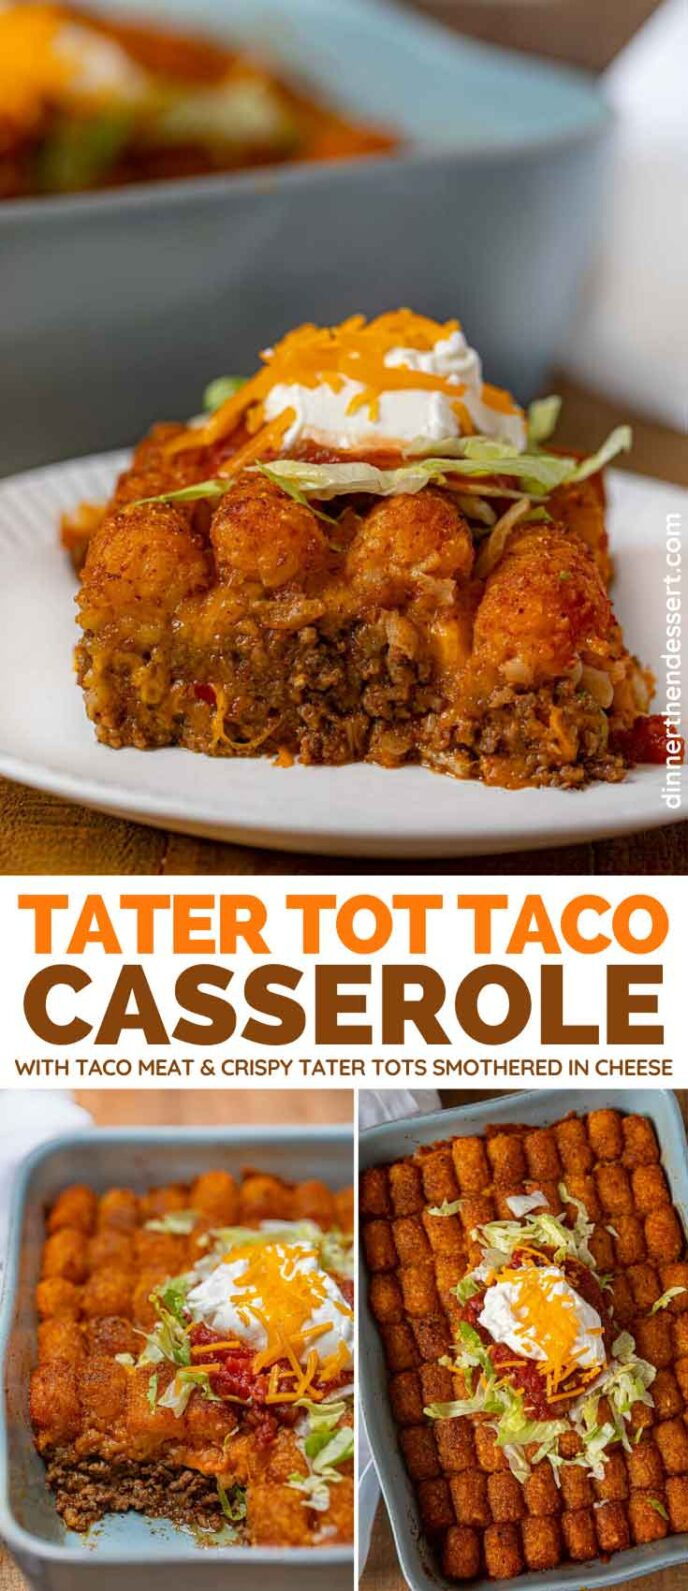 Tater Tot Taco Casserole collage